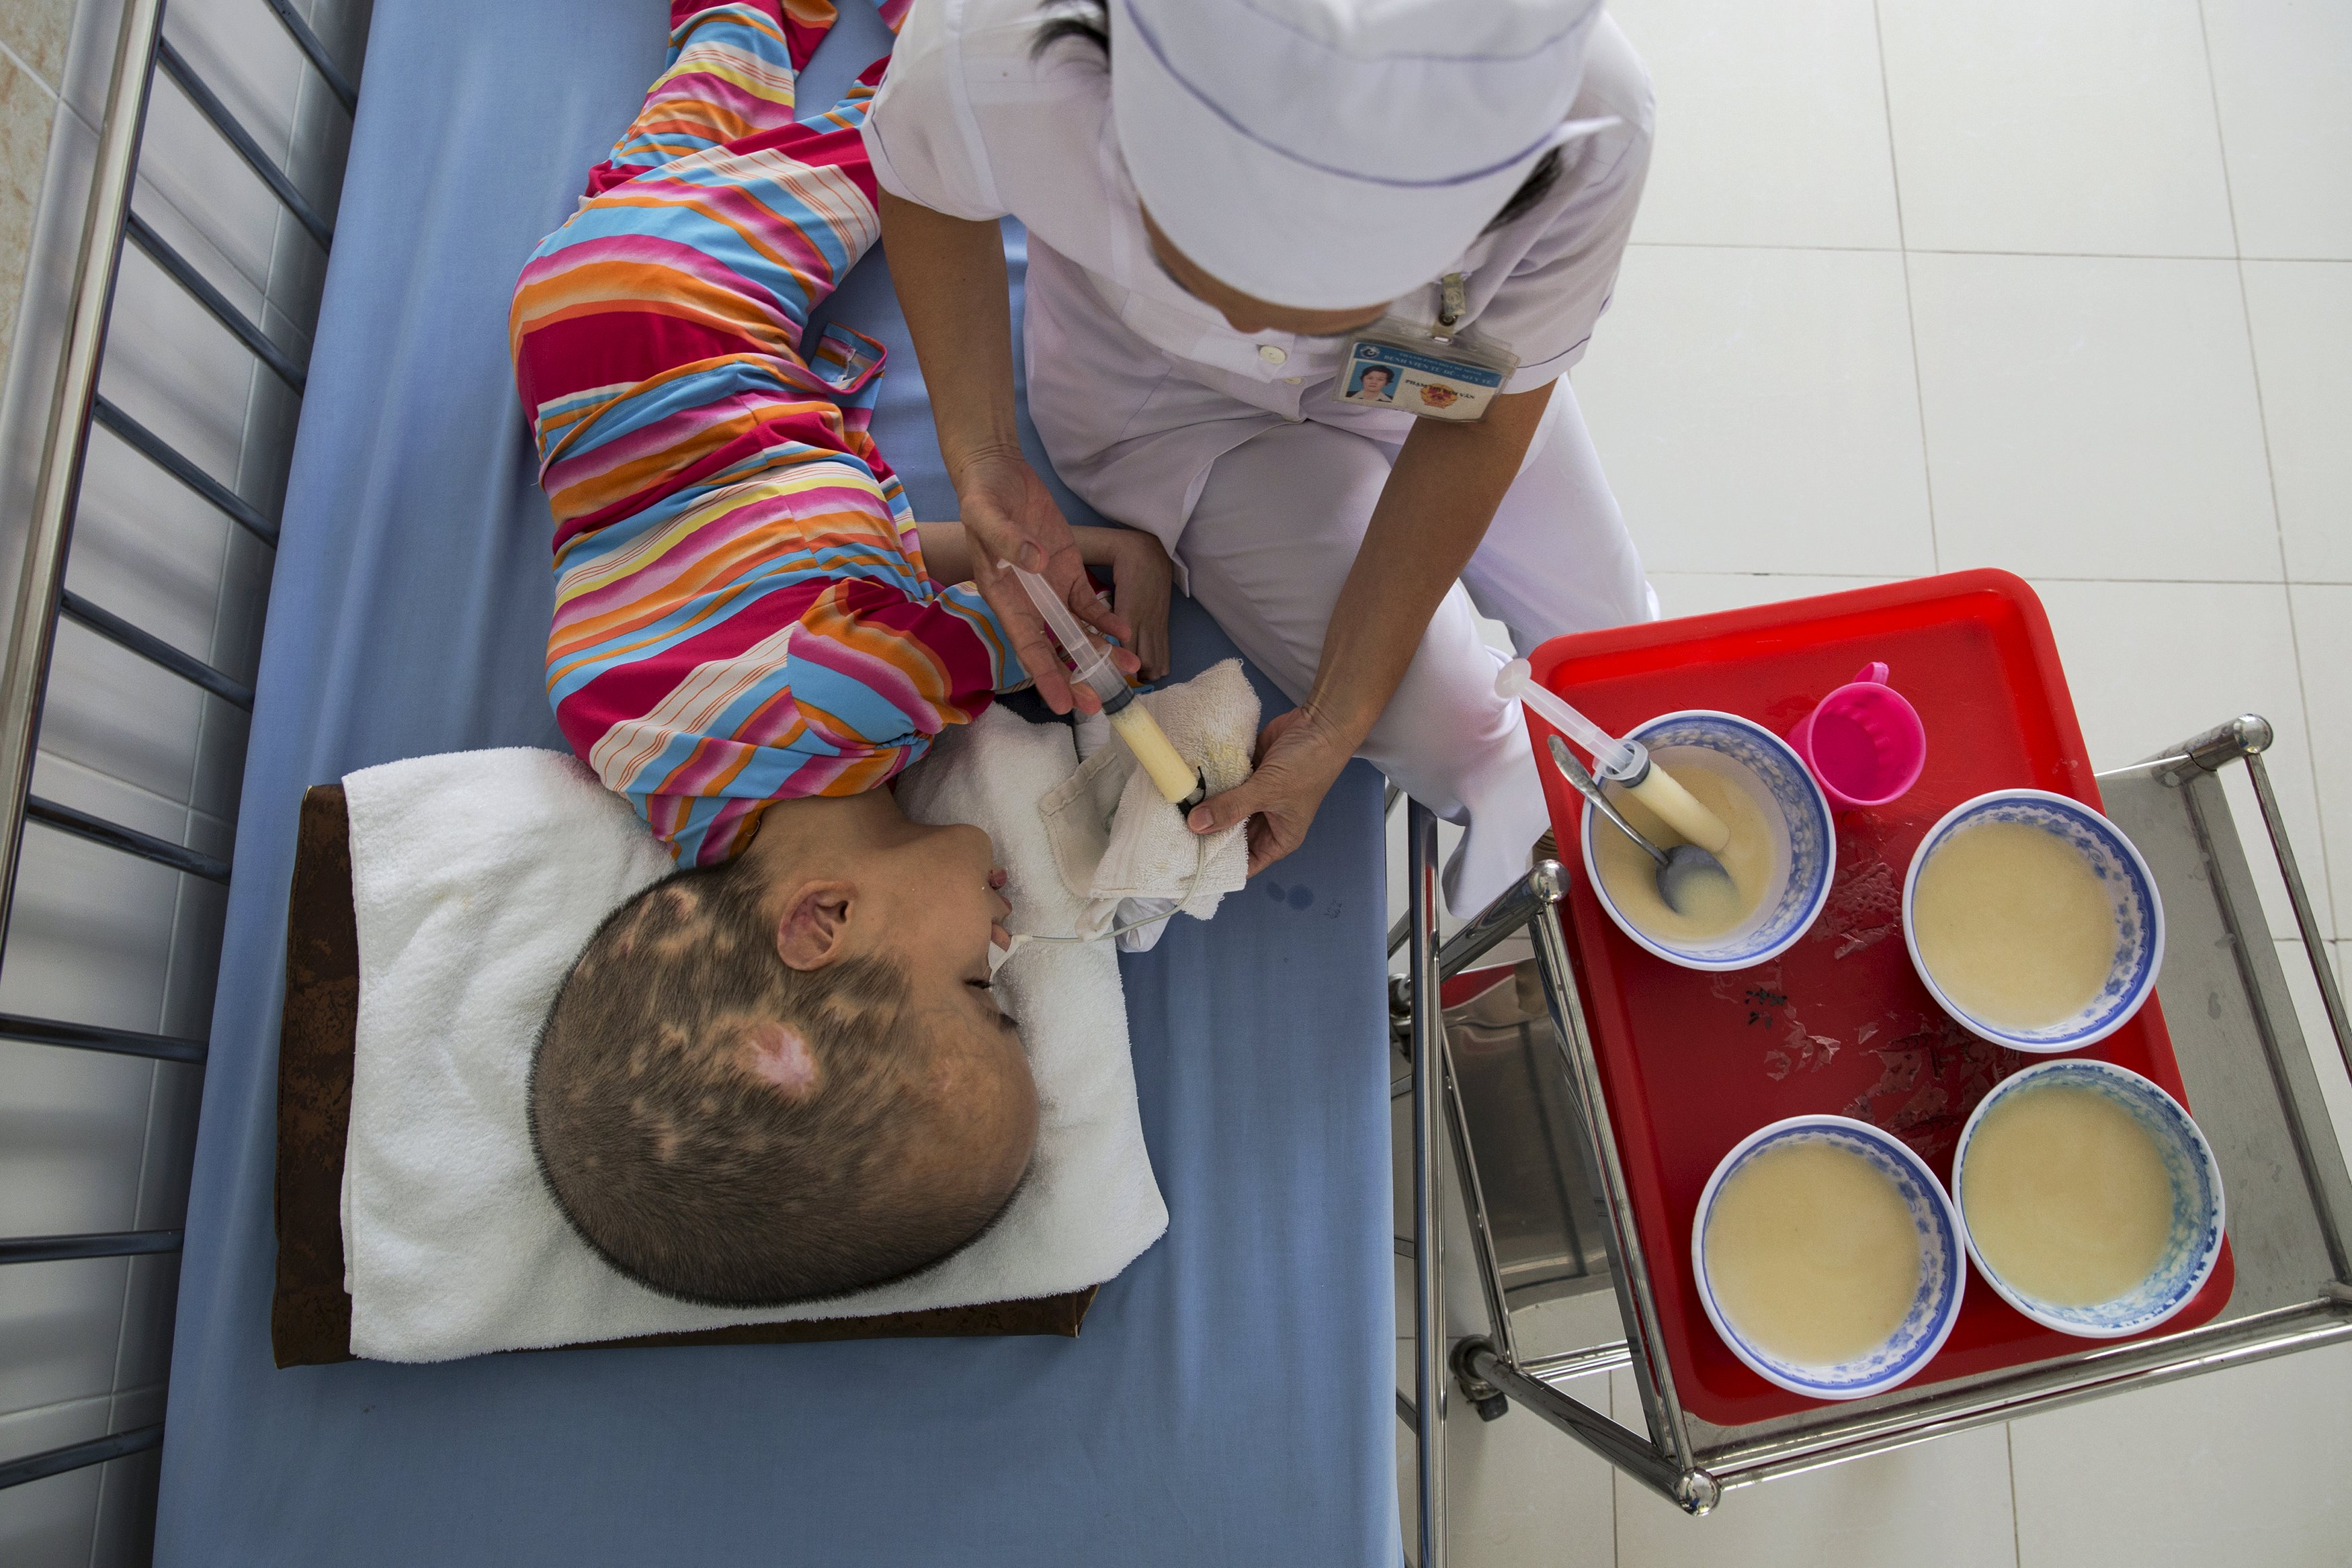 Pham Thi Phuong Khanh is fed by a hospital staff member at the Peace Village in Tu Du hospital in Ho Chi Minh City April 14, 2015. Both of Pham Thi Phuong Khanh's parents were exposed to Agent Orange during the Vietnam War.